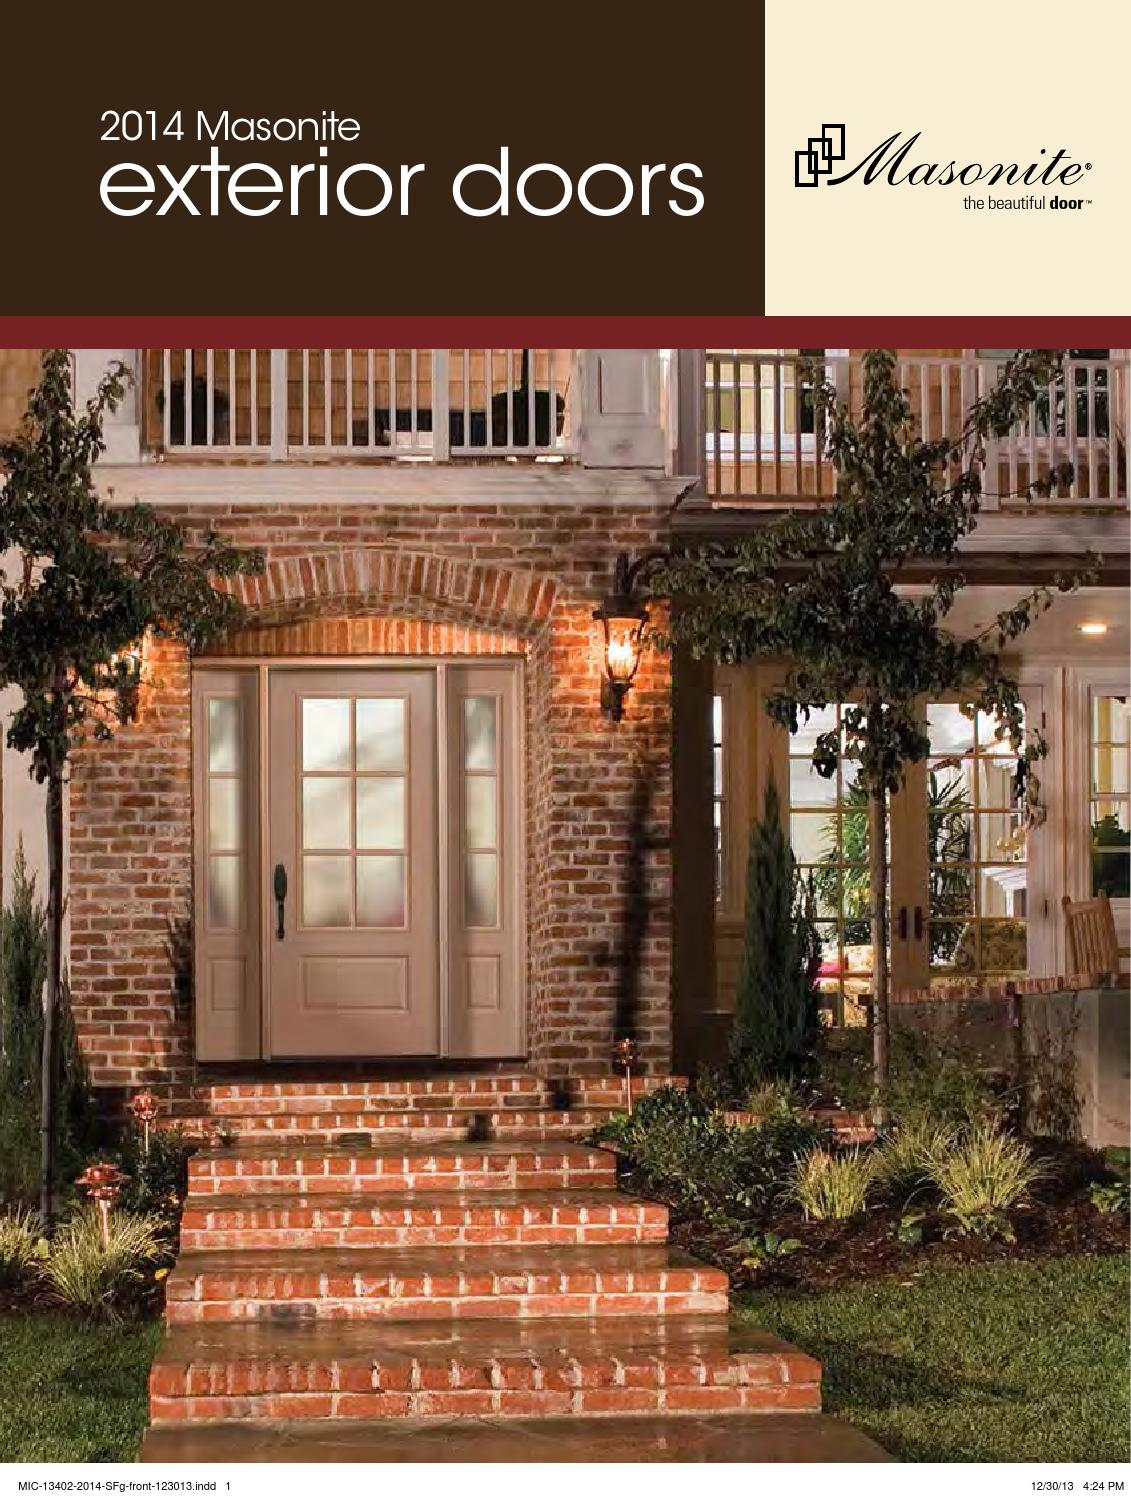 1496 #A74924 2014 Masonite Exterior Door Catalog By Meek Lumber Company Issuu picture/photo Exterior Fiberglass Doors 39991131